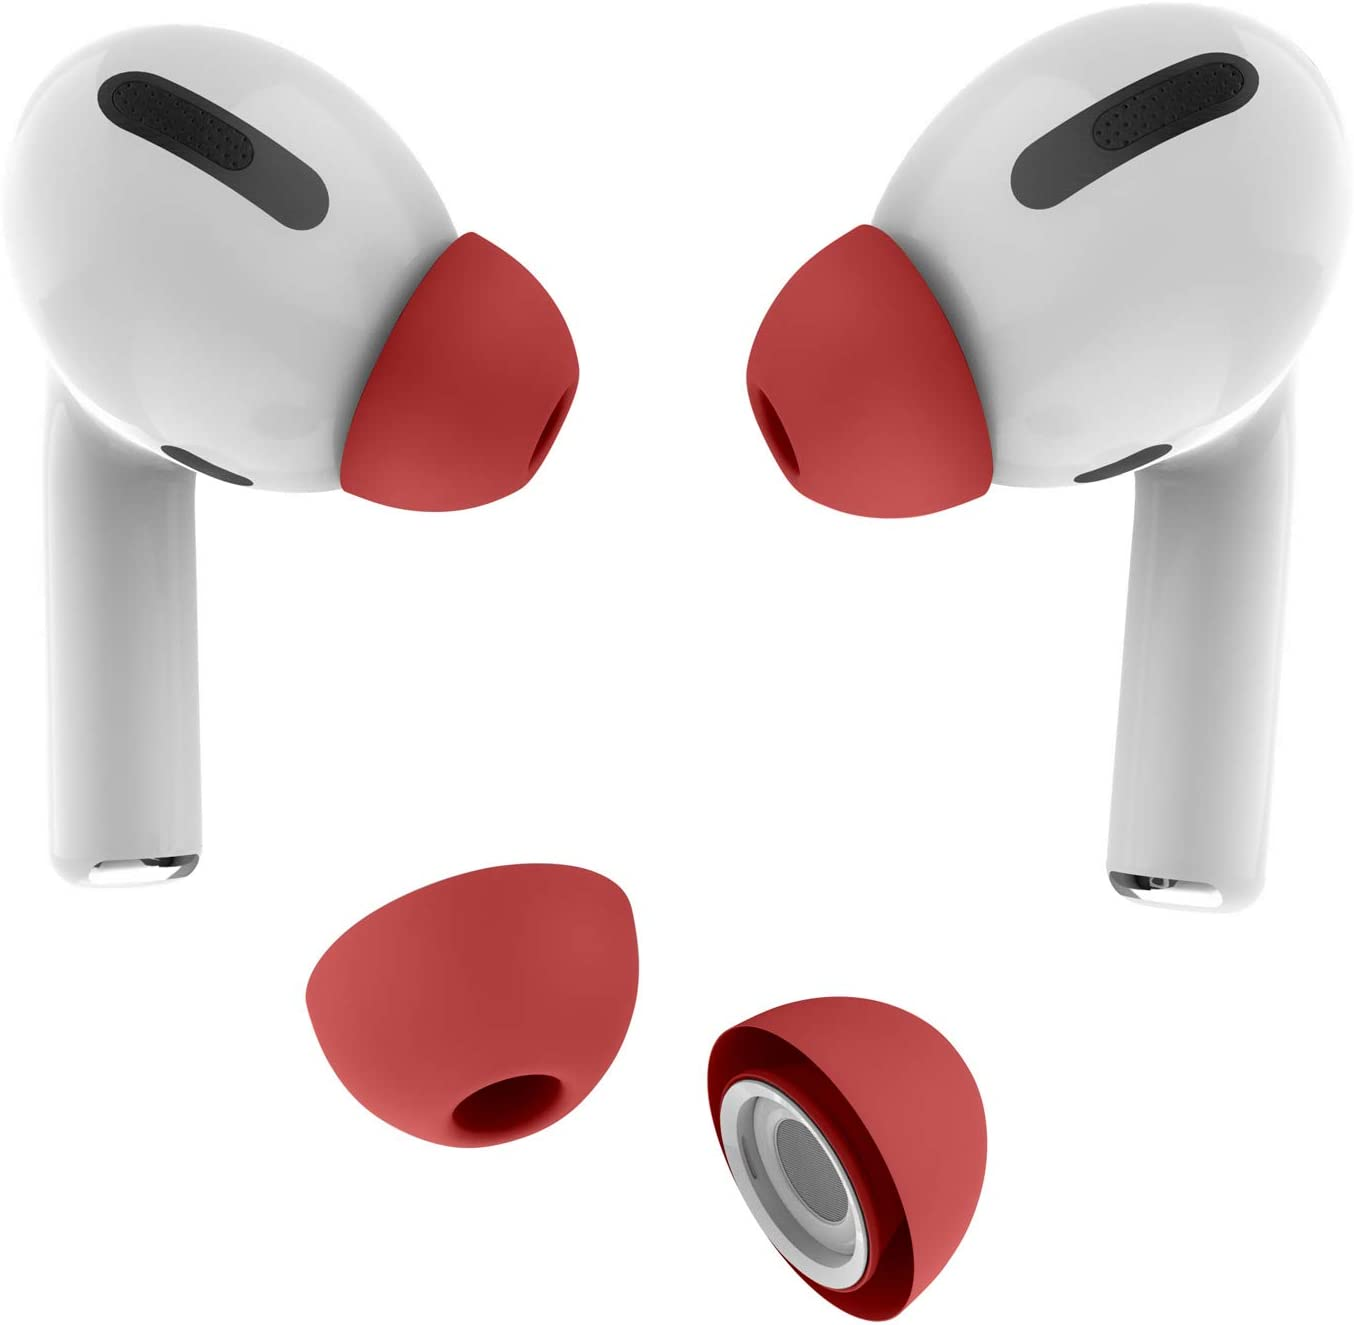 Amazon Com Allbingo Ear Tips Compatible With Airpods Pro 2 Pairs Silicone Anti Slip Replacement Earbuds Cover Accessories Small Medium Large Compatible For Apple Airpods Pro Medium Red Home Audio Theater